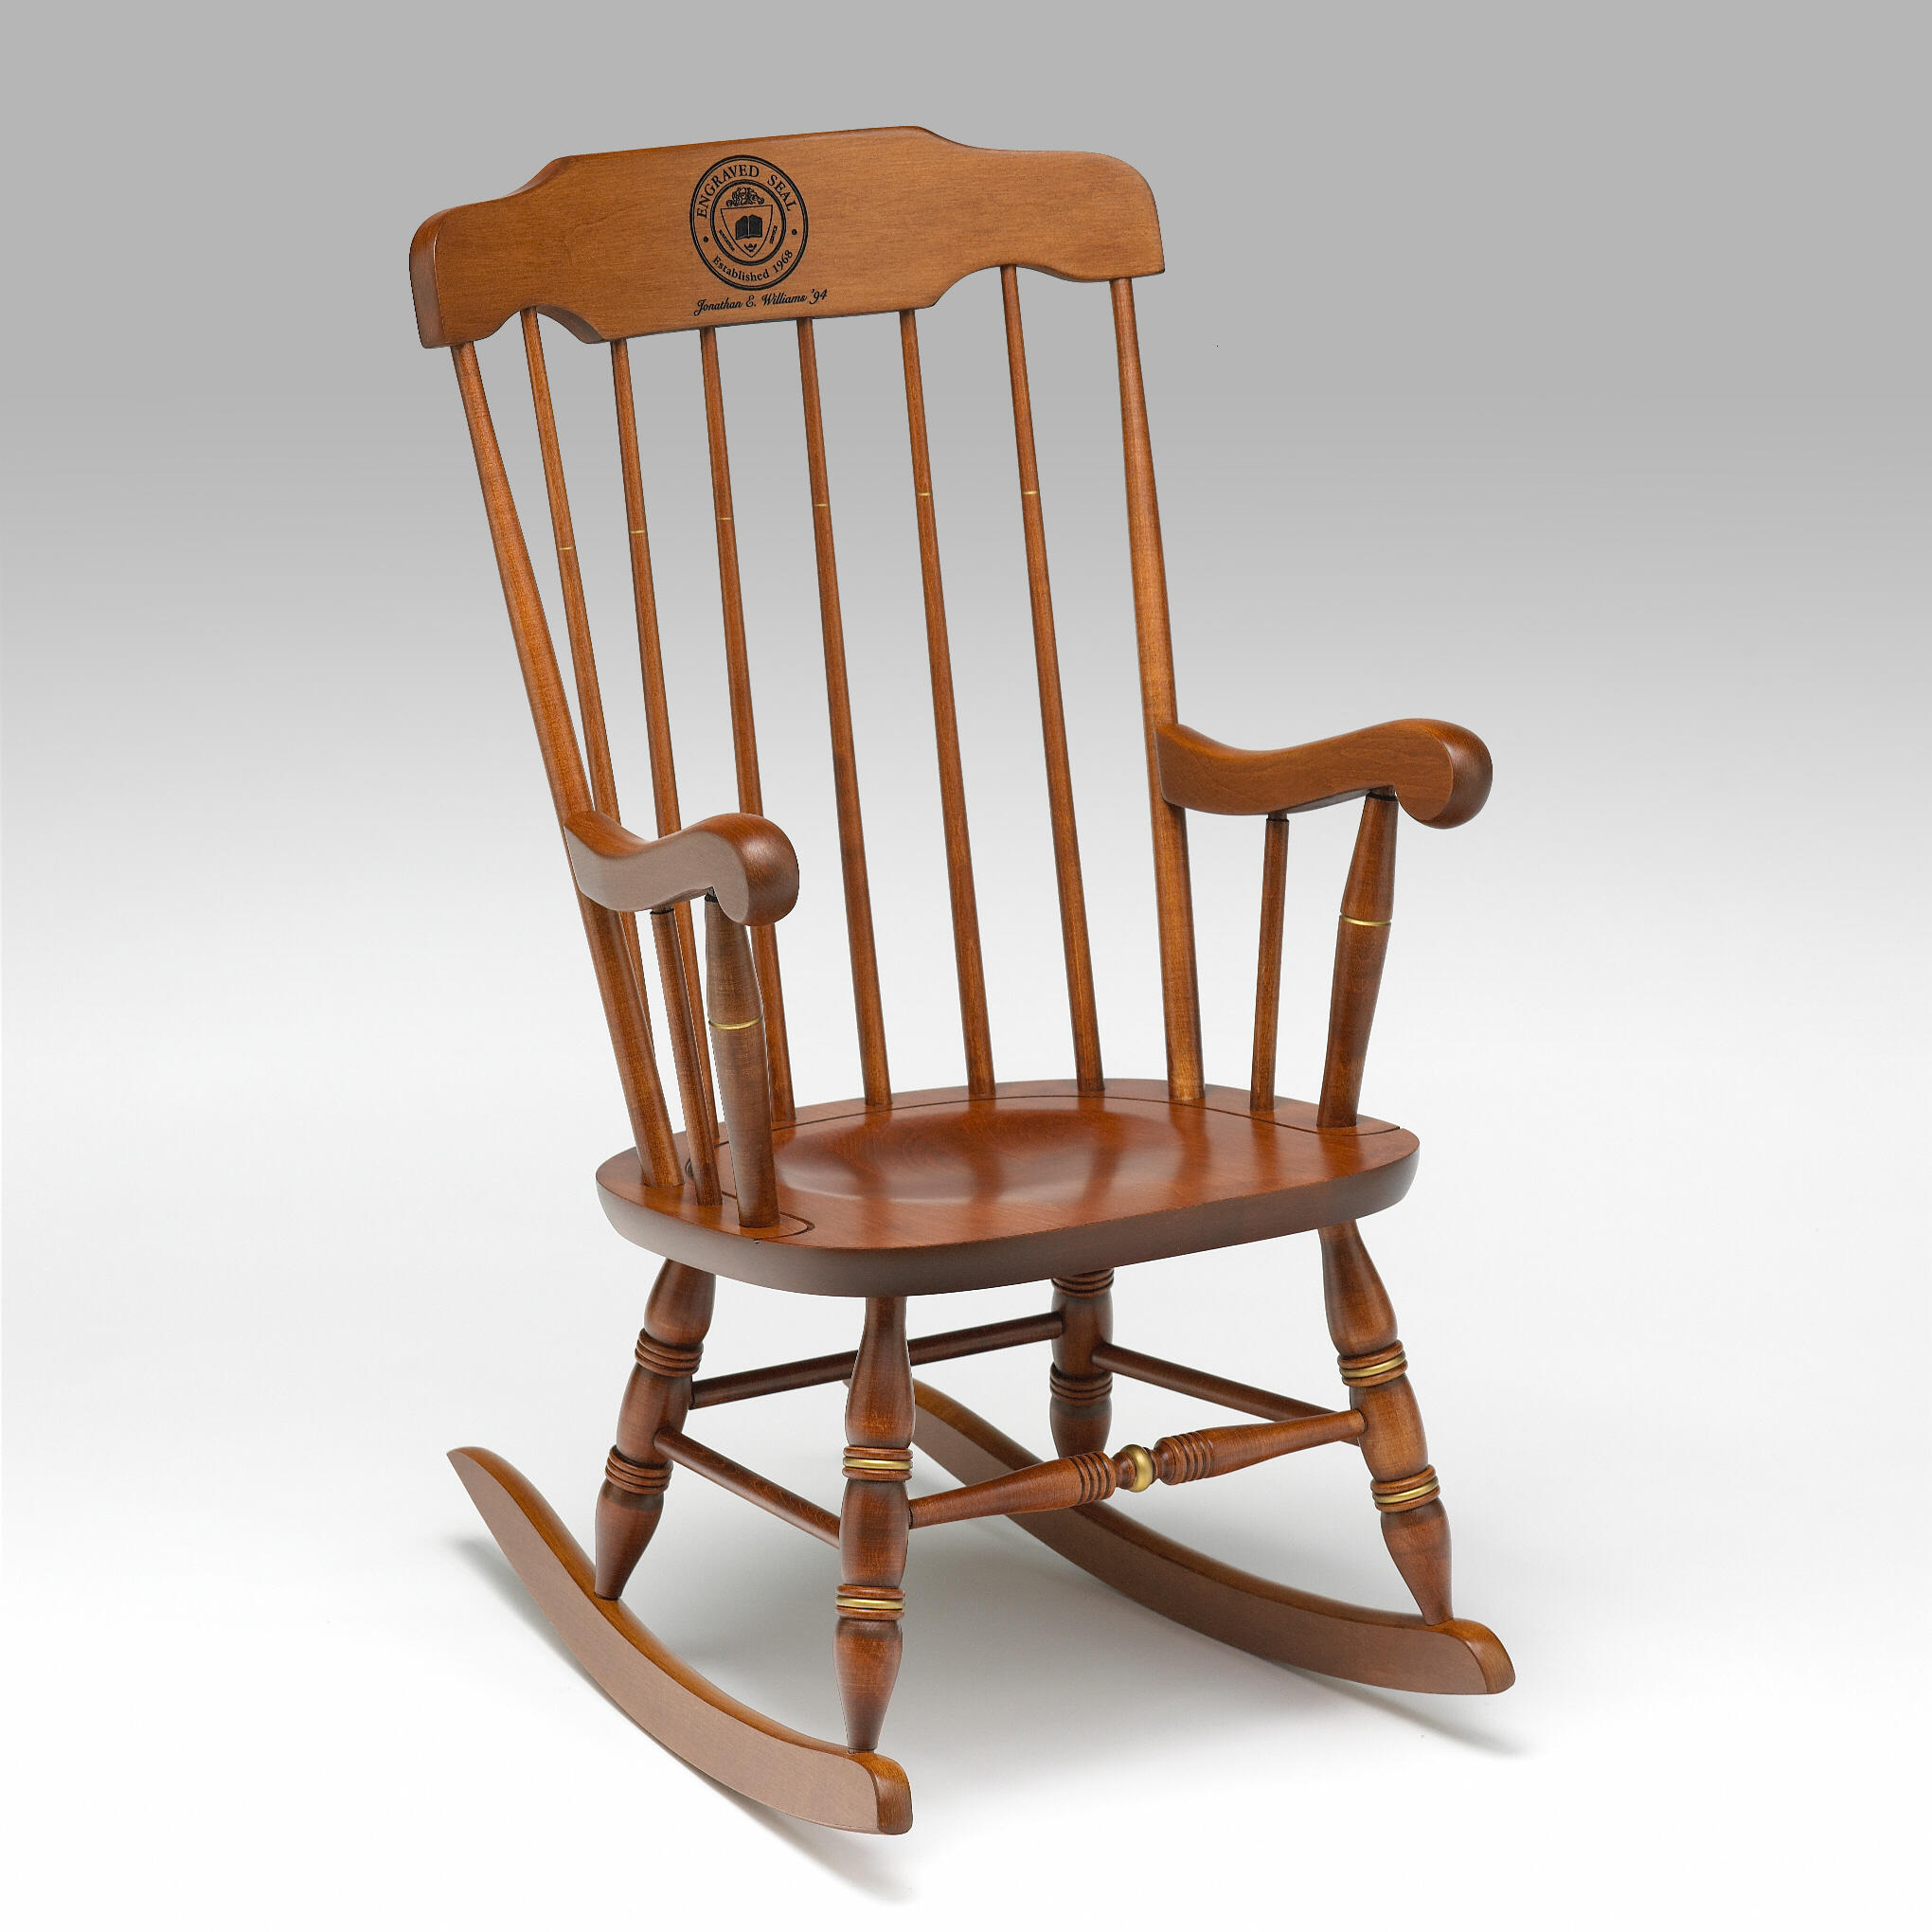 what is a rocking chair navy stool help me safely disassemble furniture dit like this